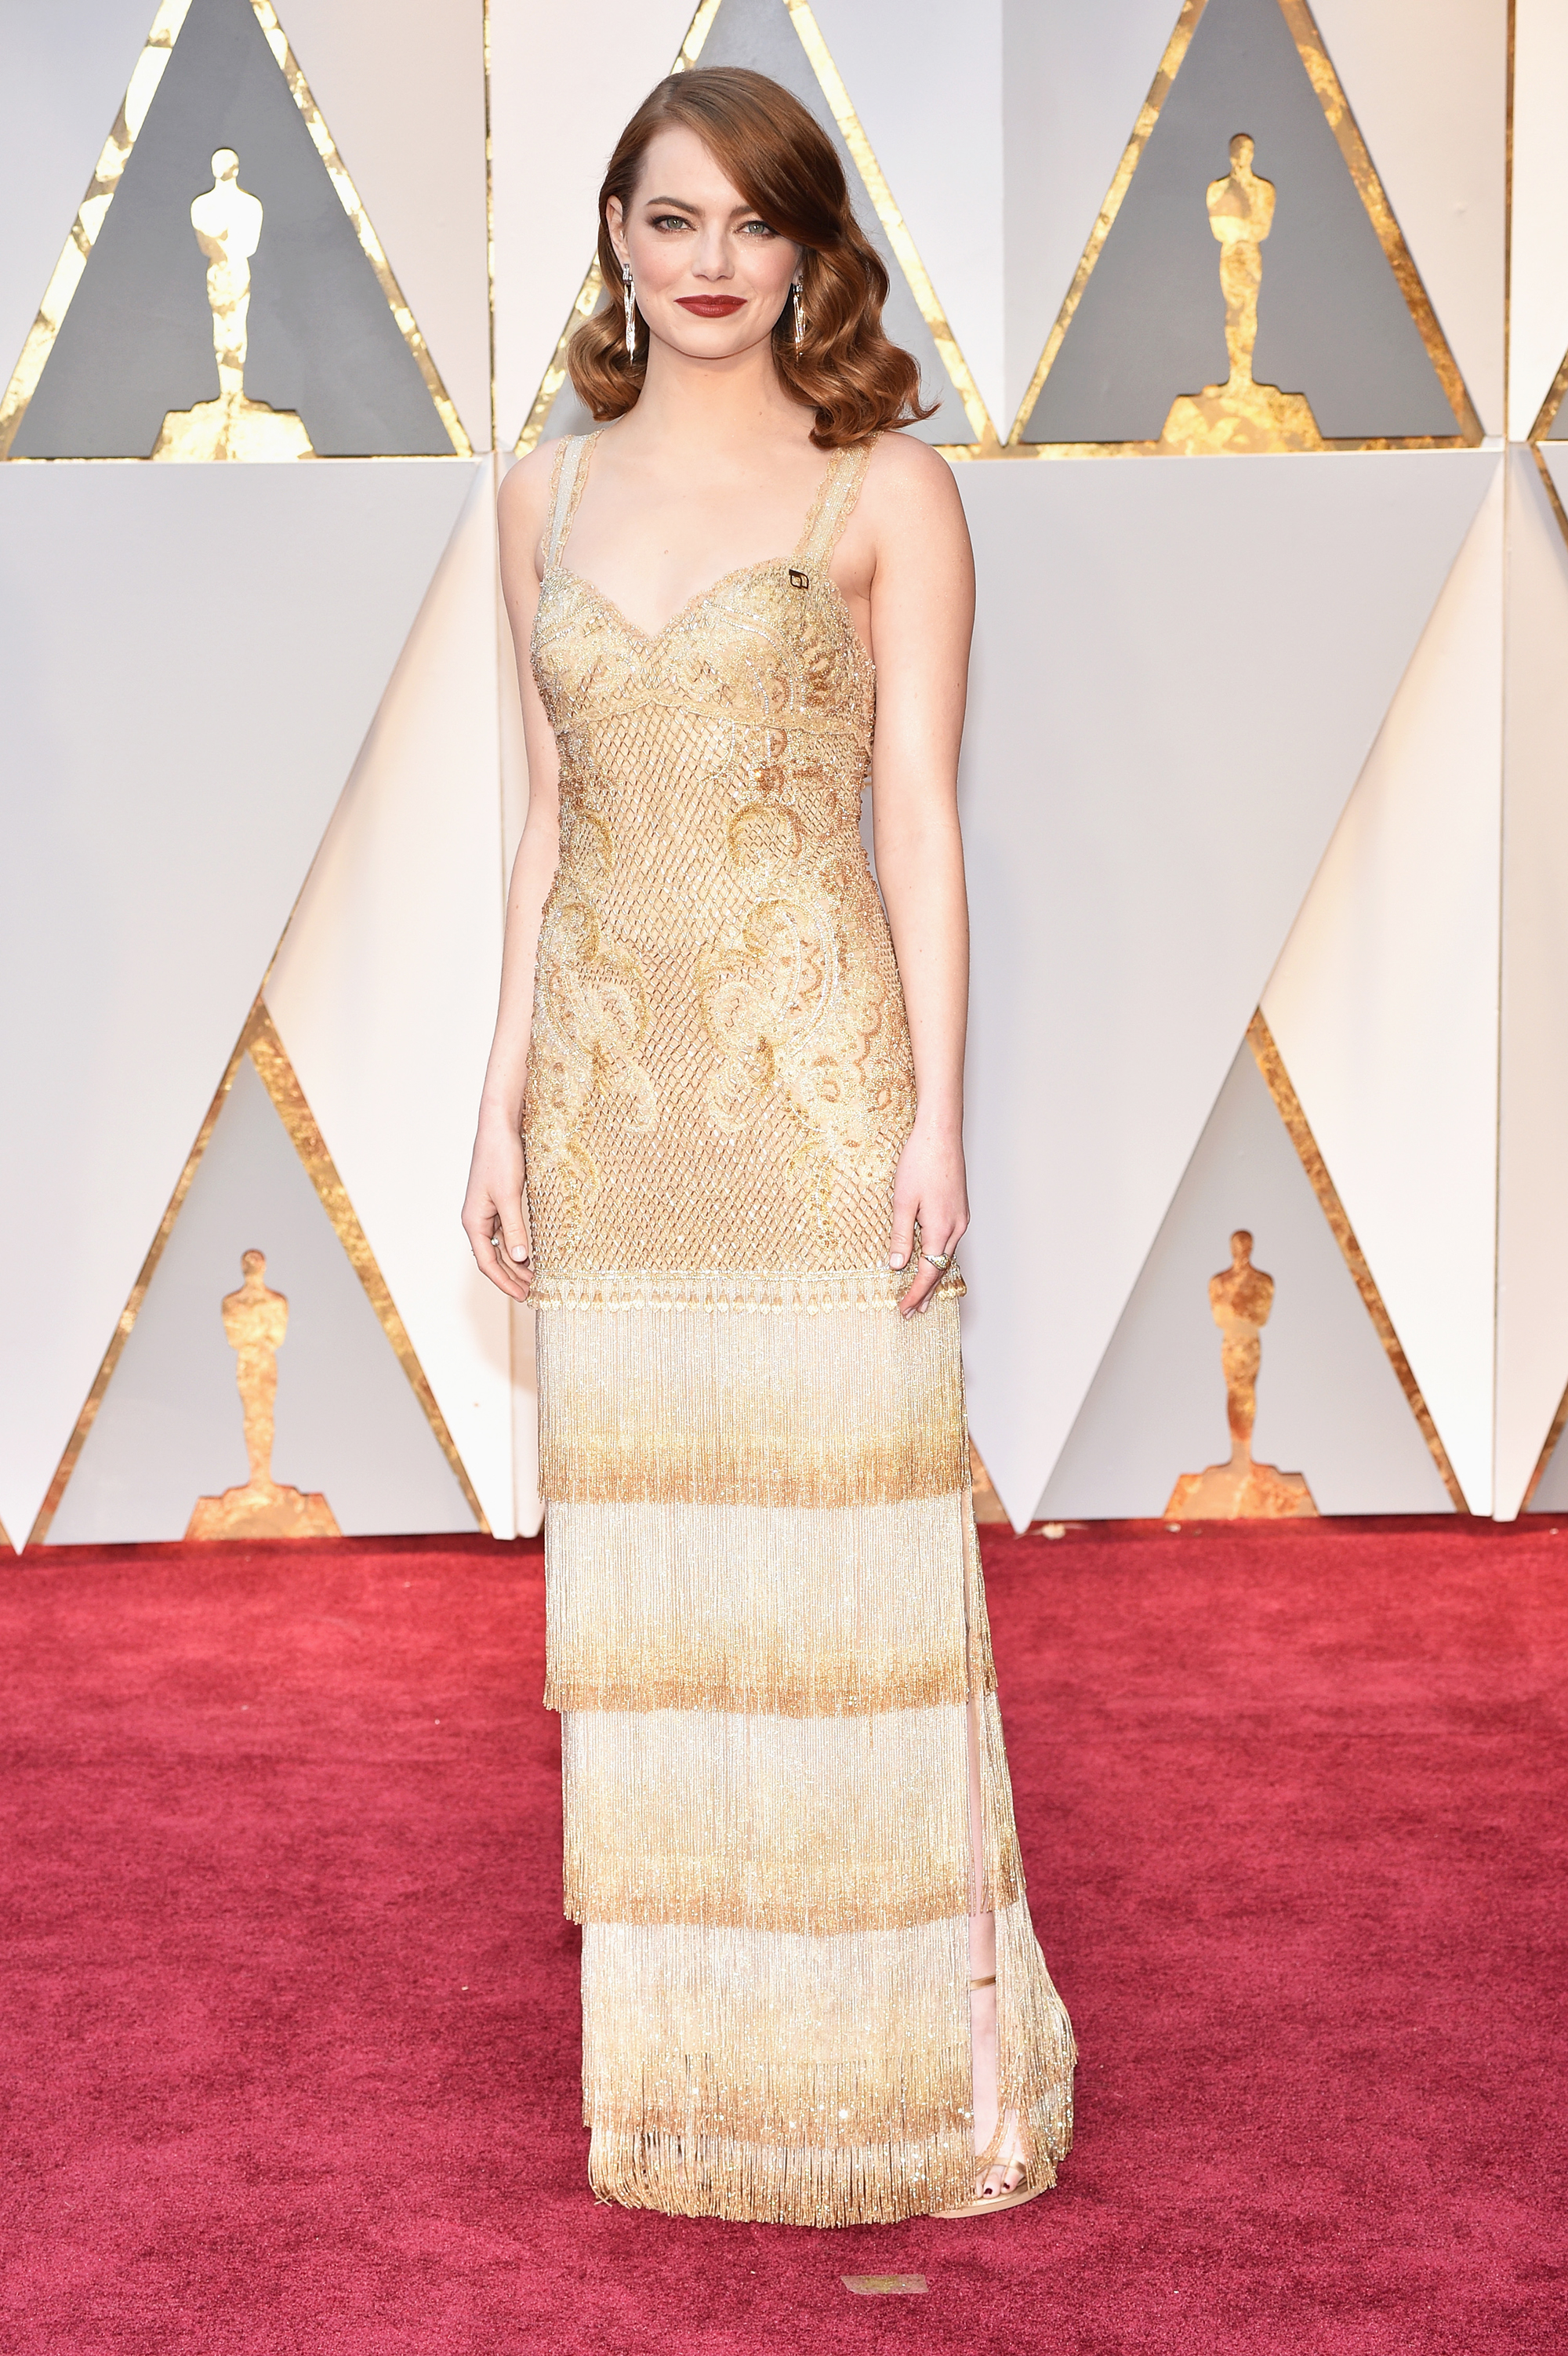 Emma Stone on the red carpet for the 89th Oscars, on Feb. 26, 2017 in Hollywood, Calif.